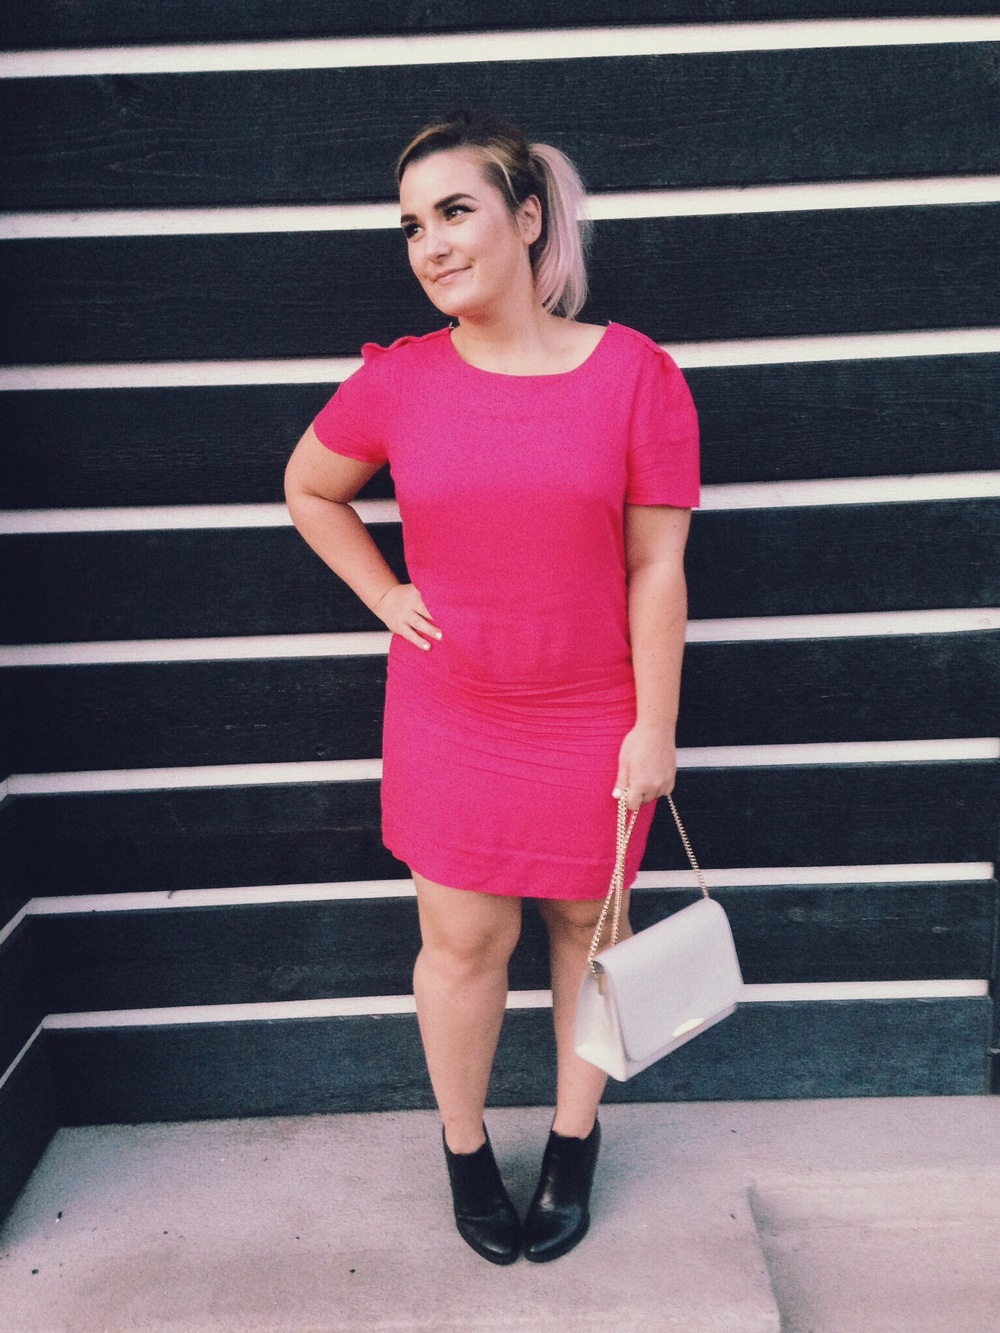 personal style- a simple birthday dinner & stylish pink dress